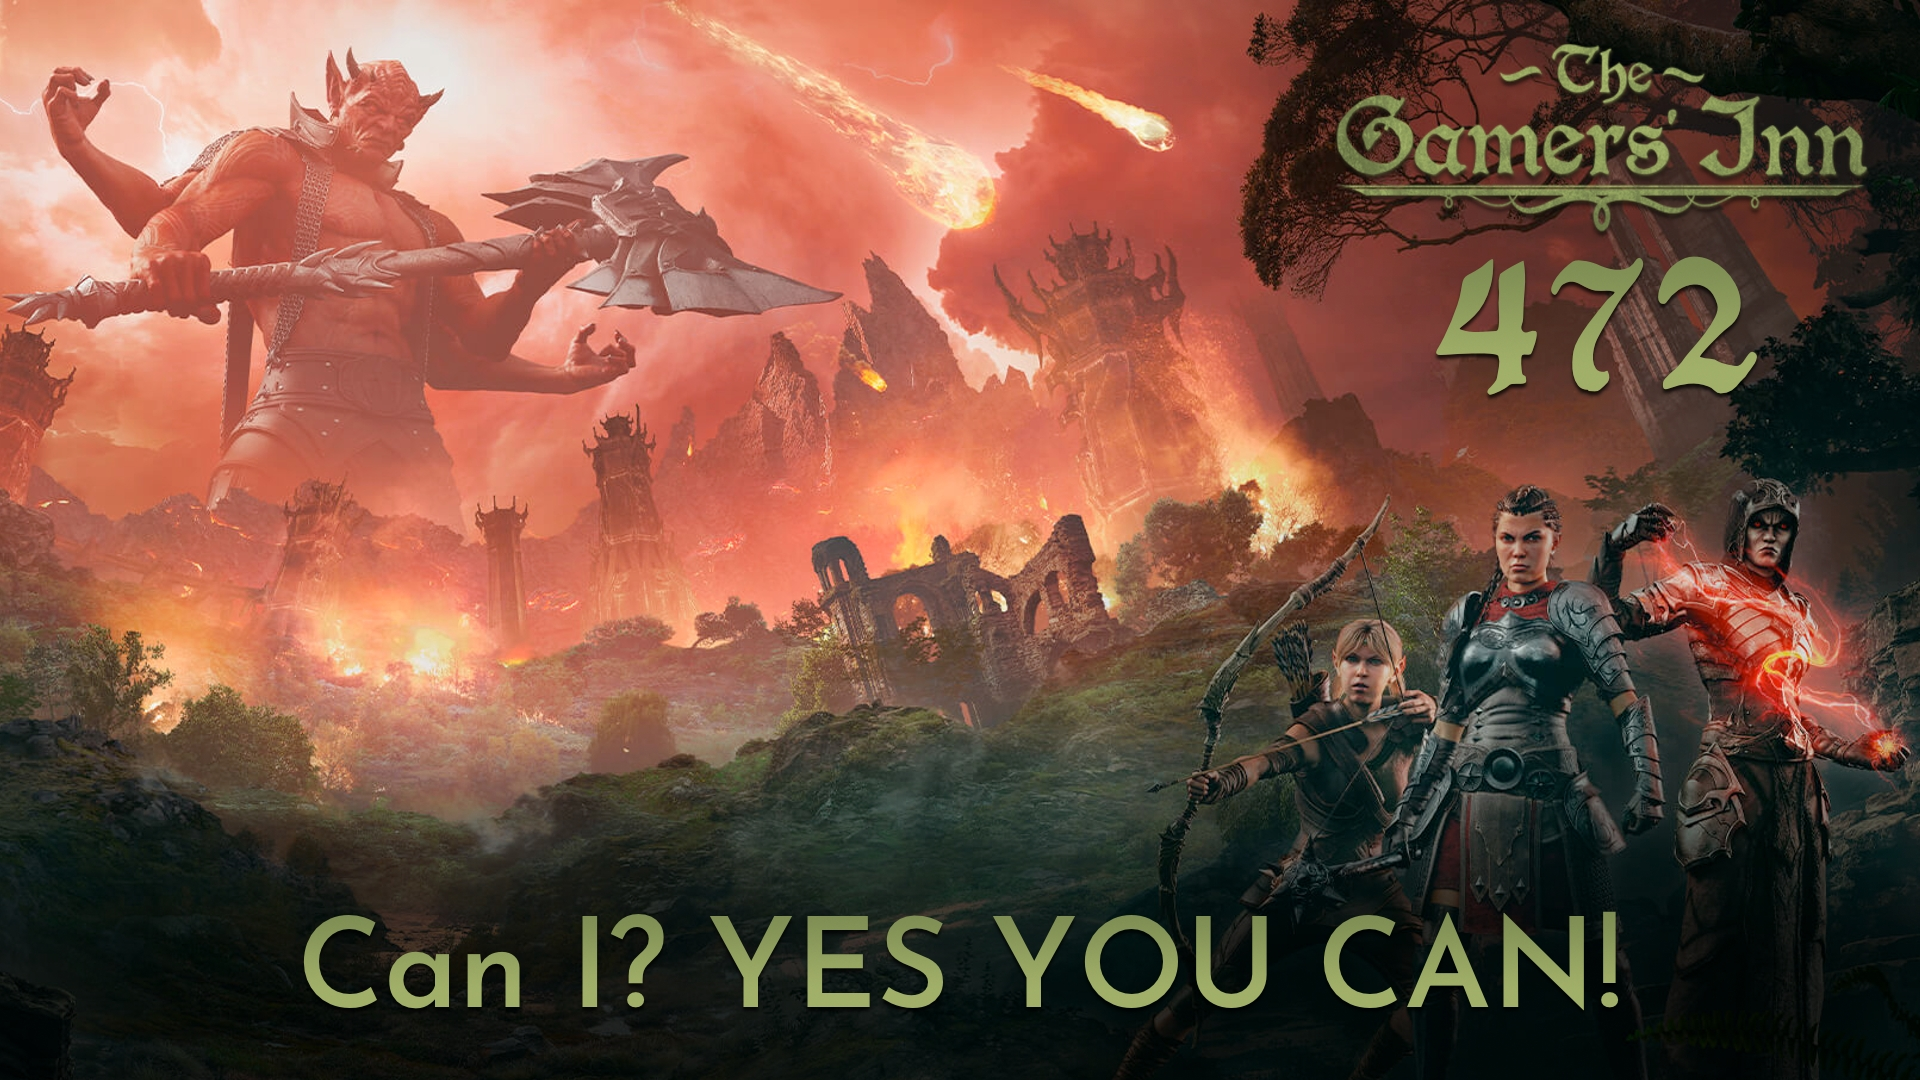 TGI 472 - Can I? YES YOU CAN!